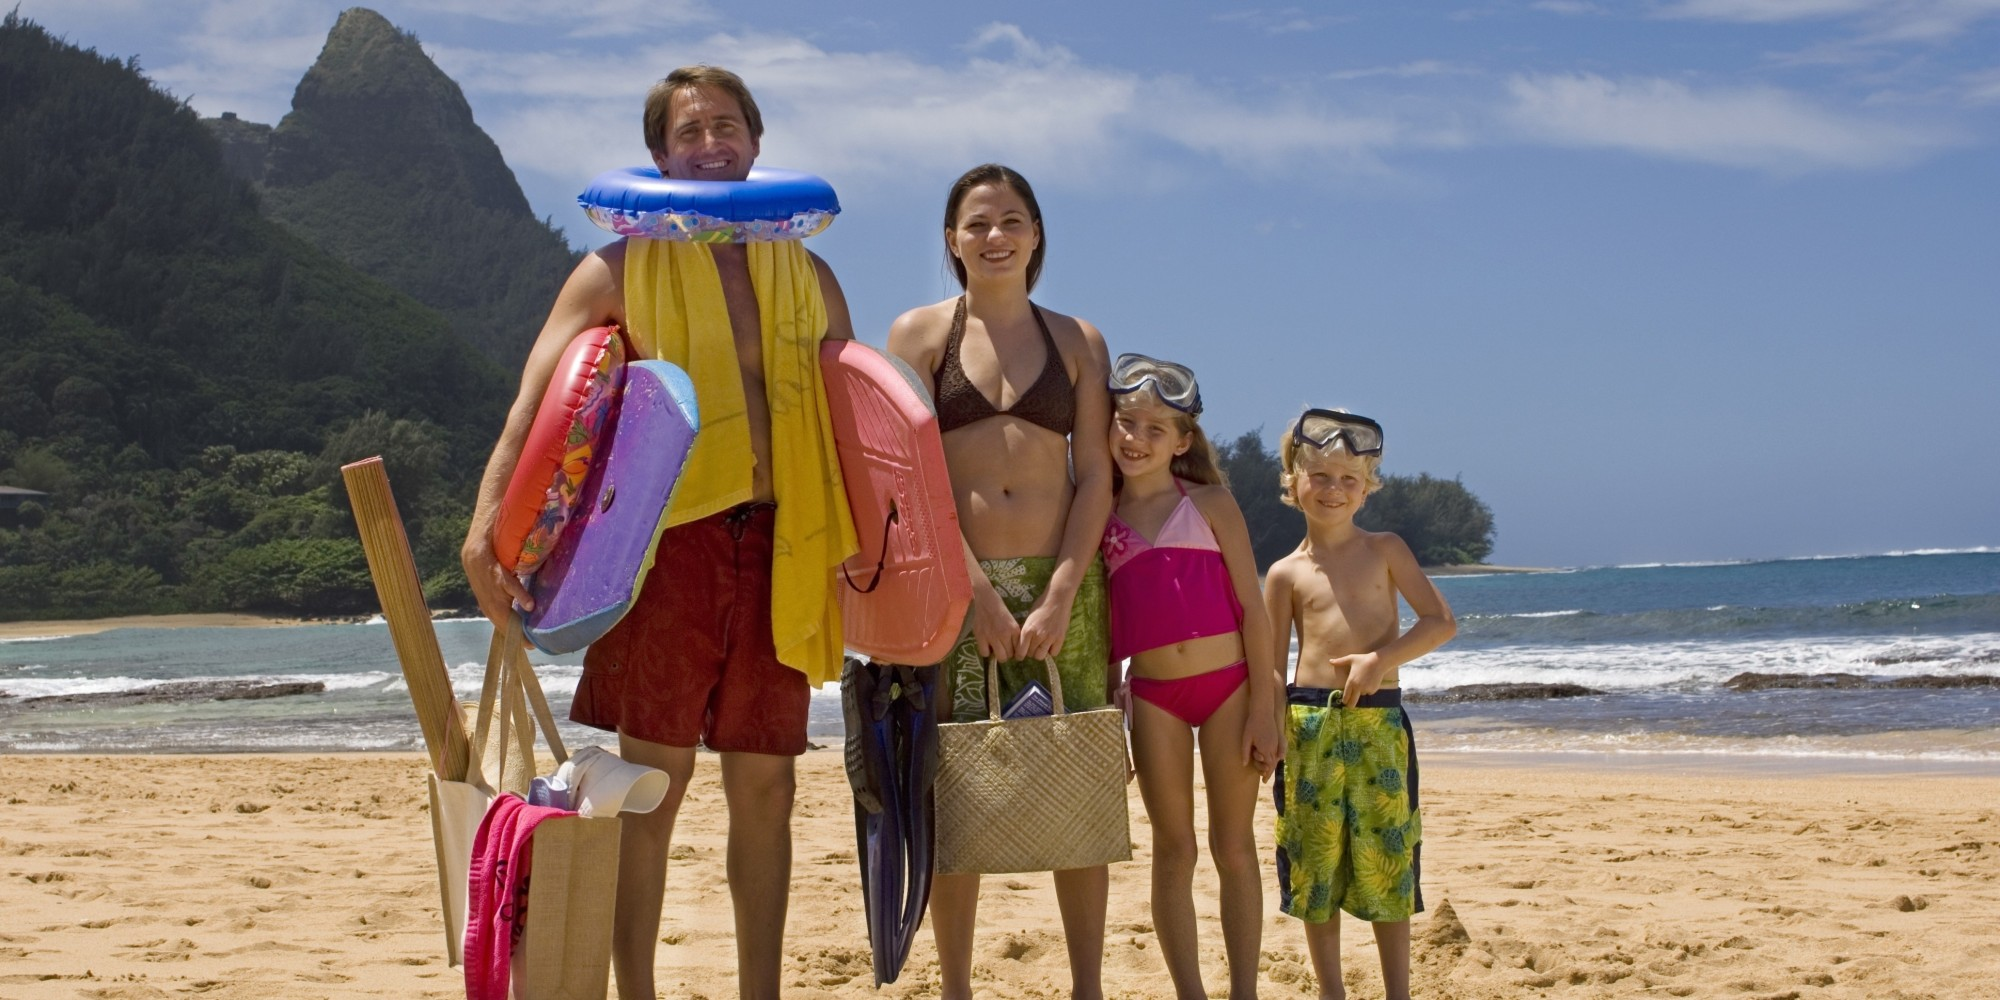 Worst Tourist Habits According To Hawaii Locals | HuffPost